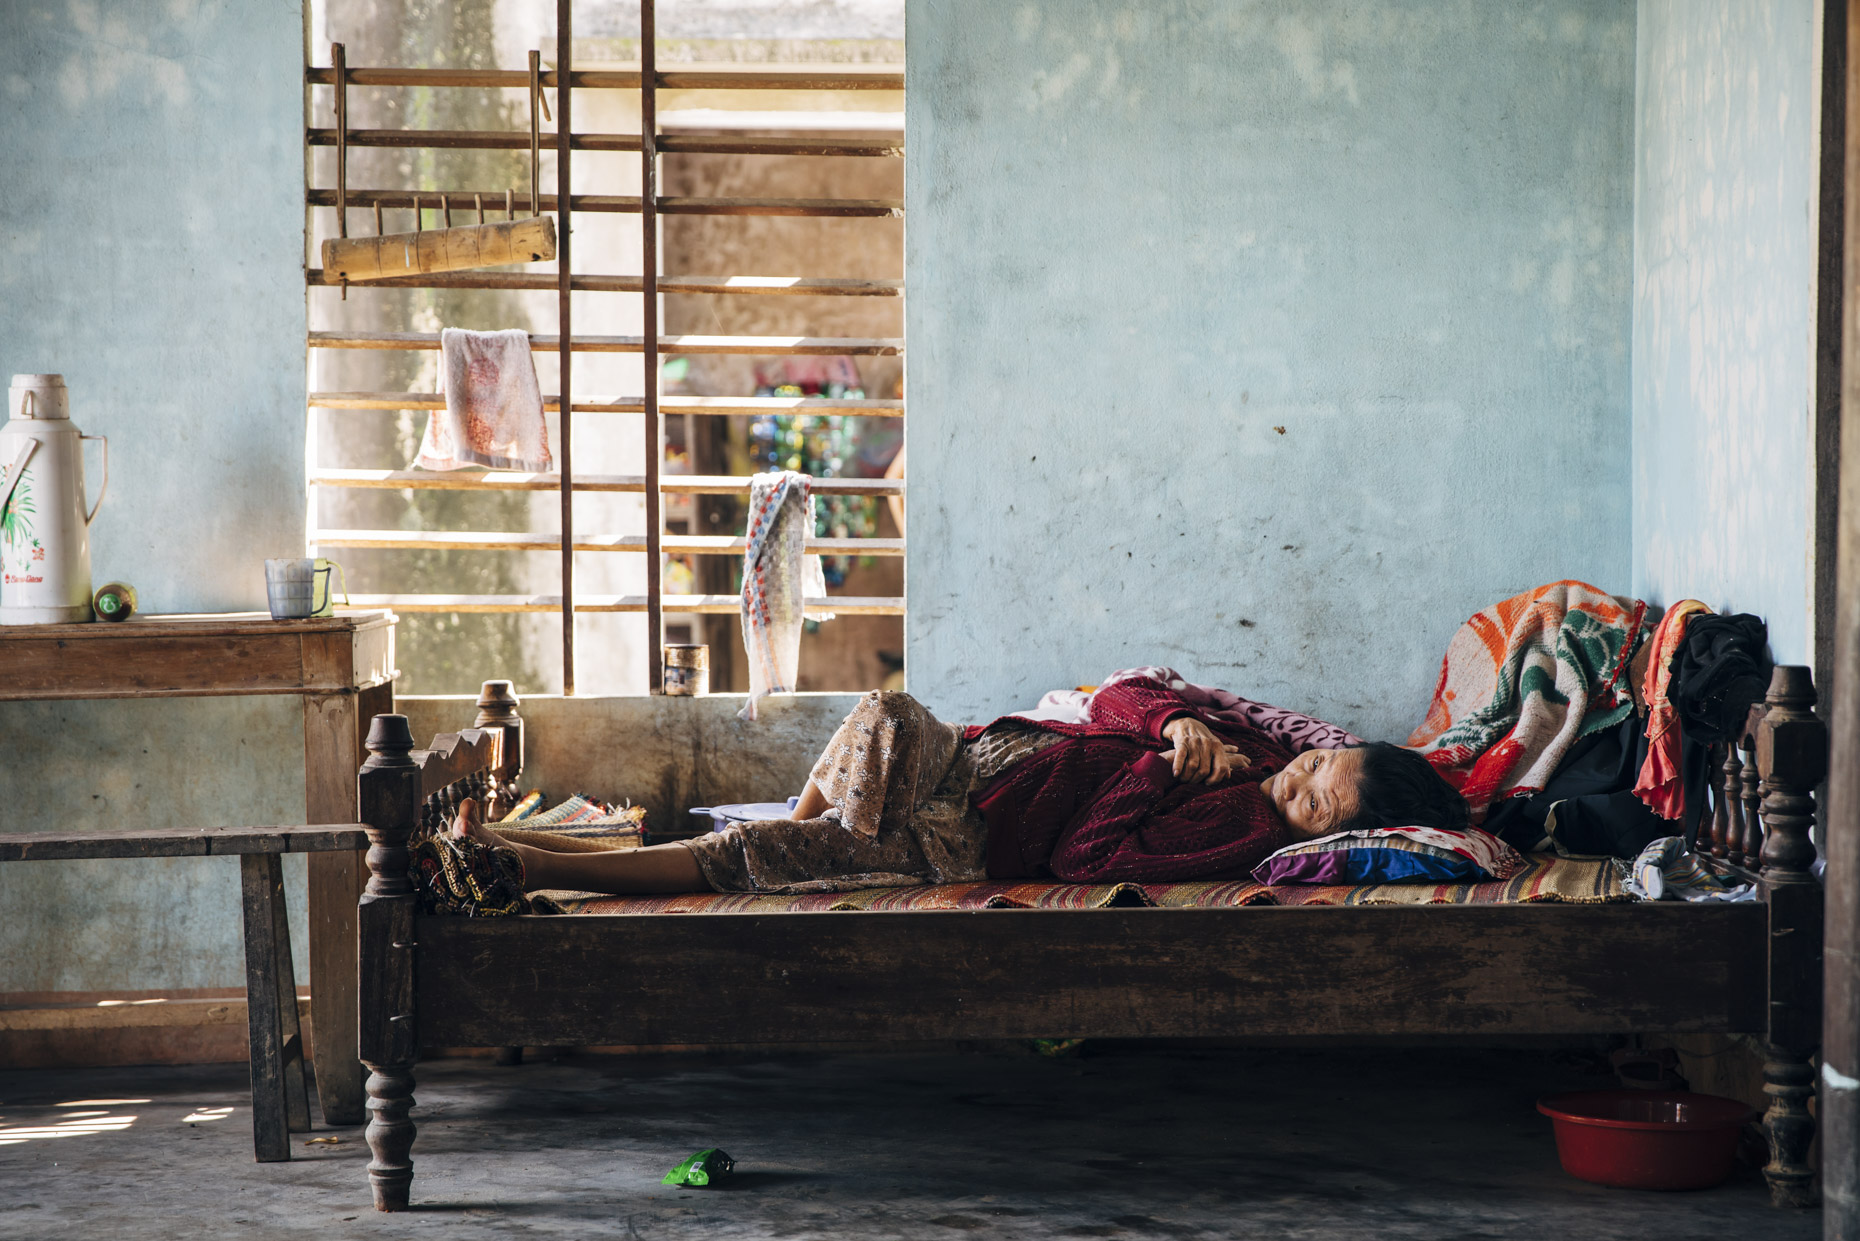 Old Woman in colorful clothes laying on wooden bed in Vietnam